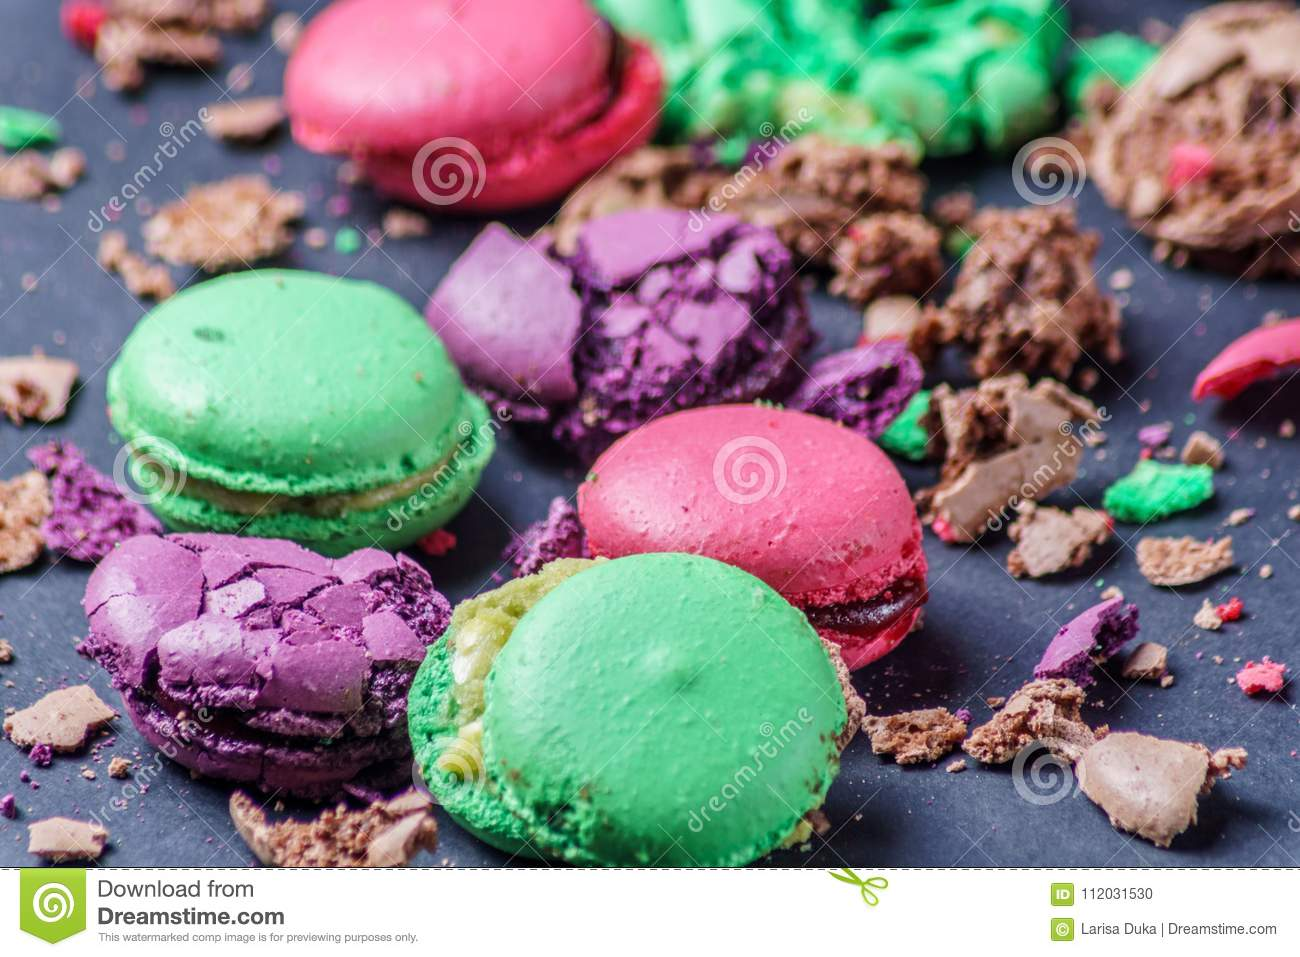 Colored Crumbed Macaroons on a black background, closeup.